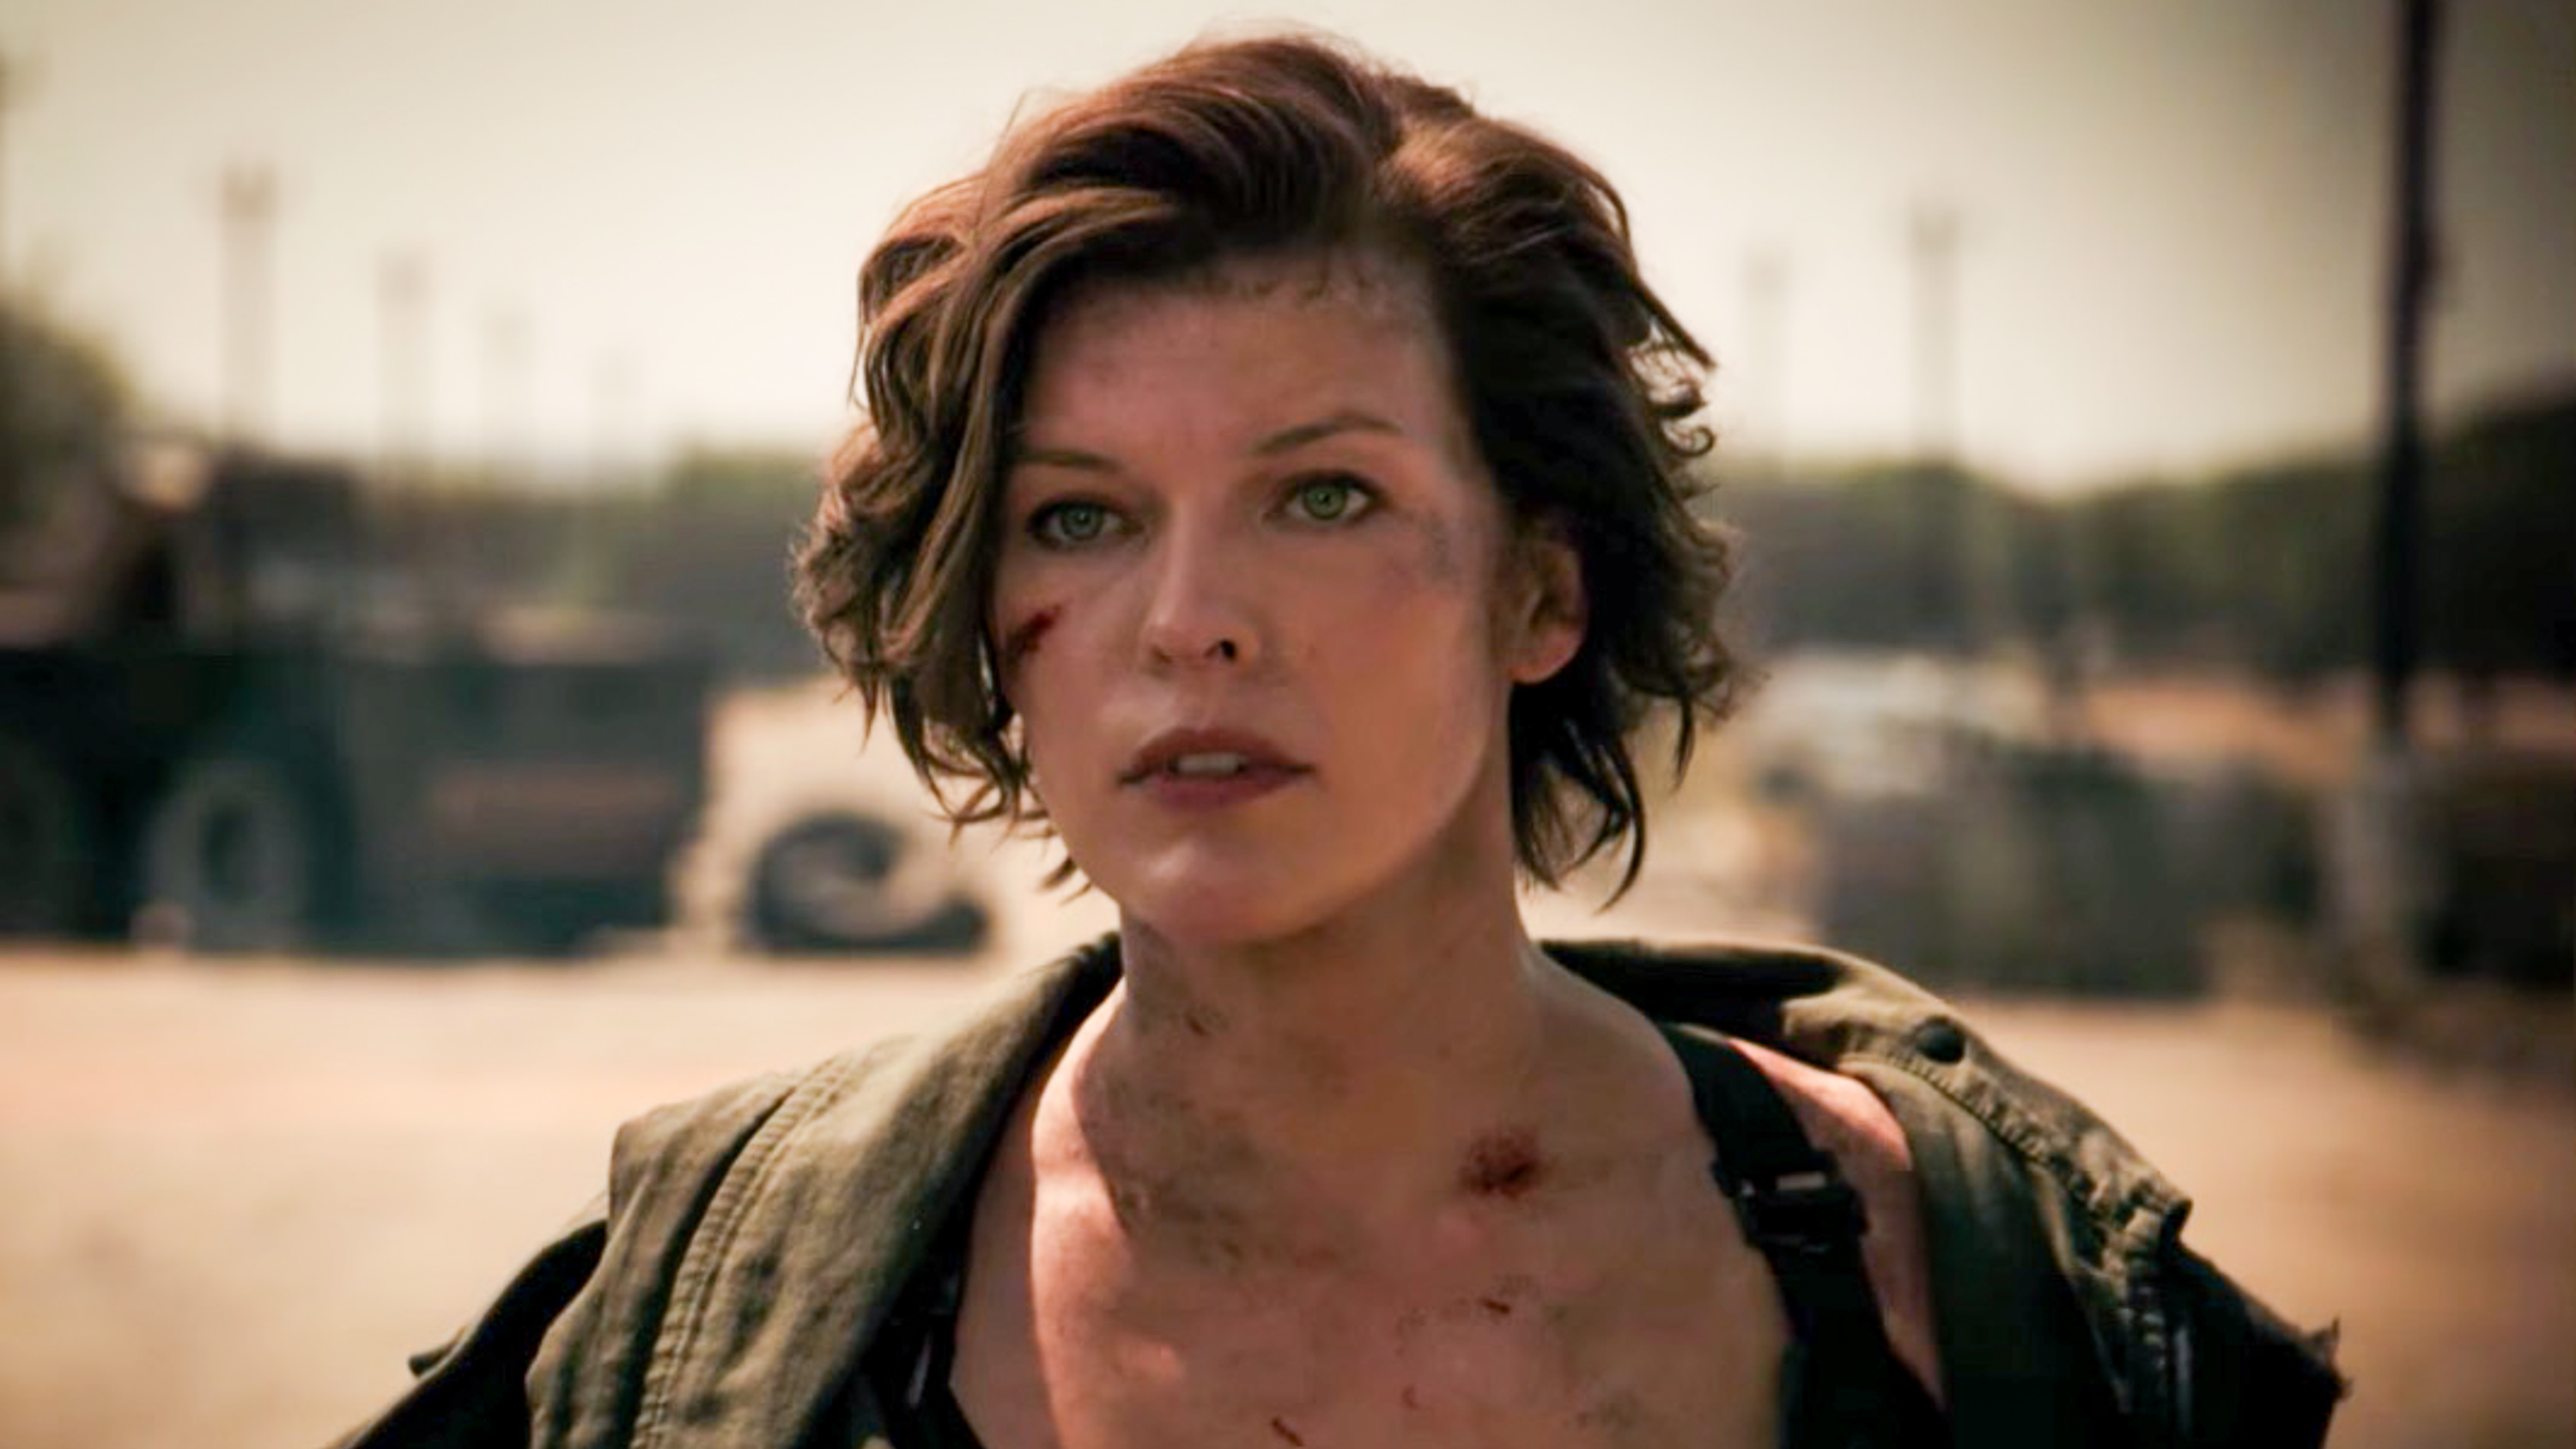 WATCH: First 'Resident Evil: The Final Chapter' trailer released